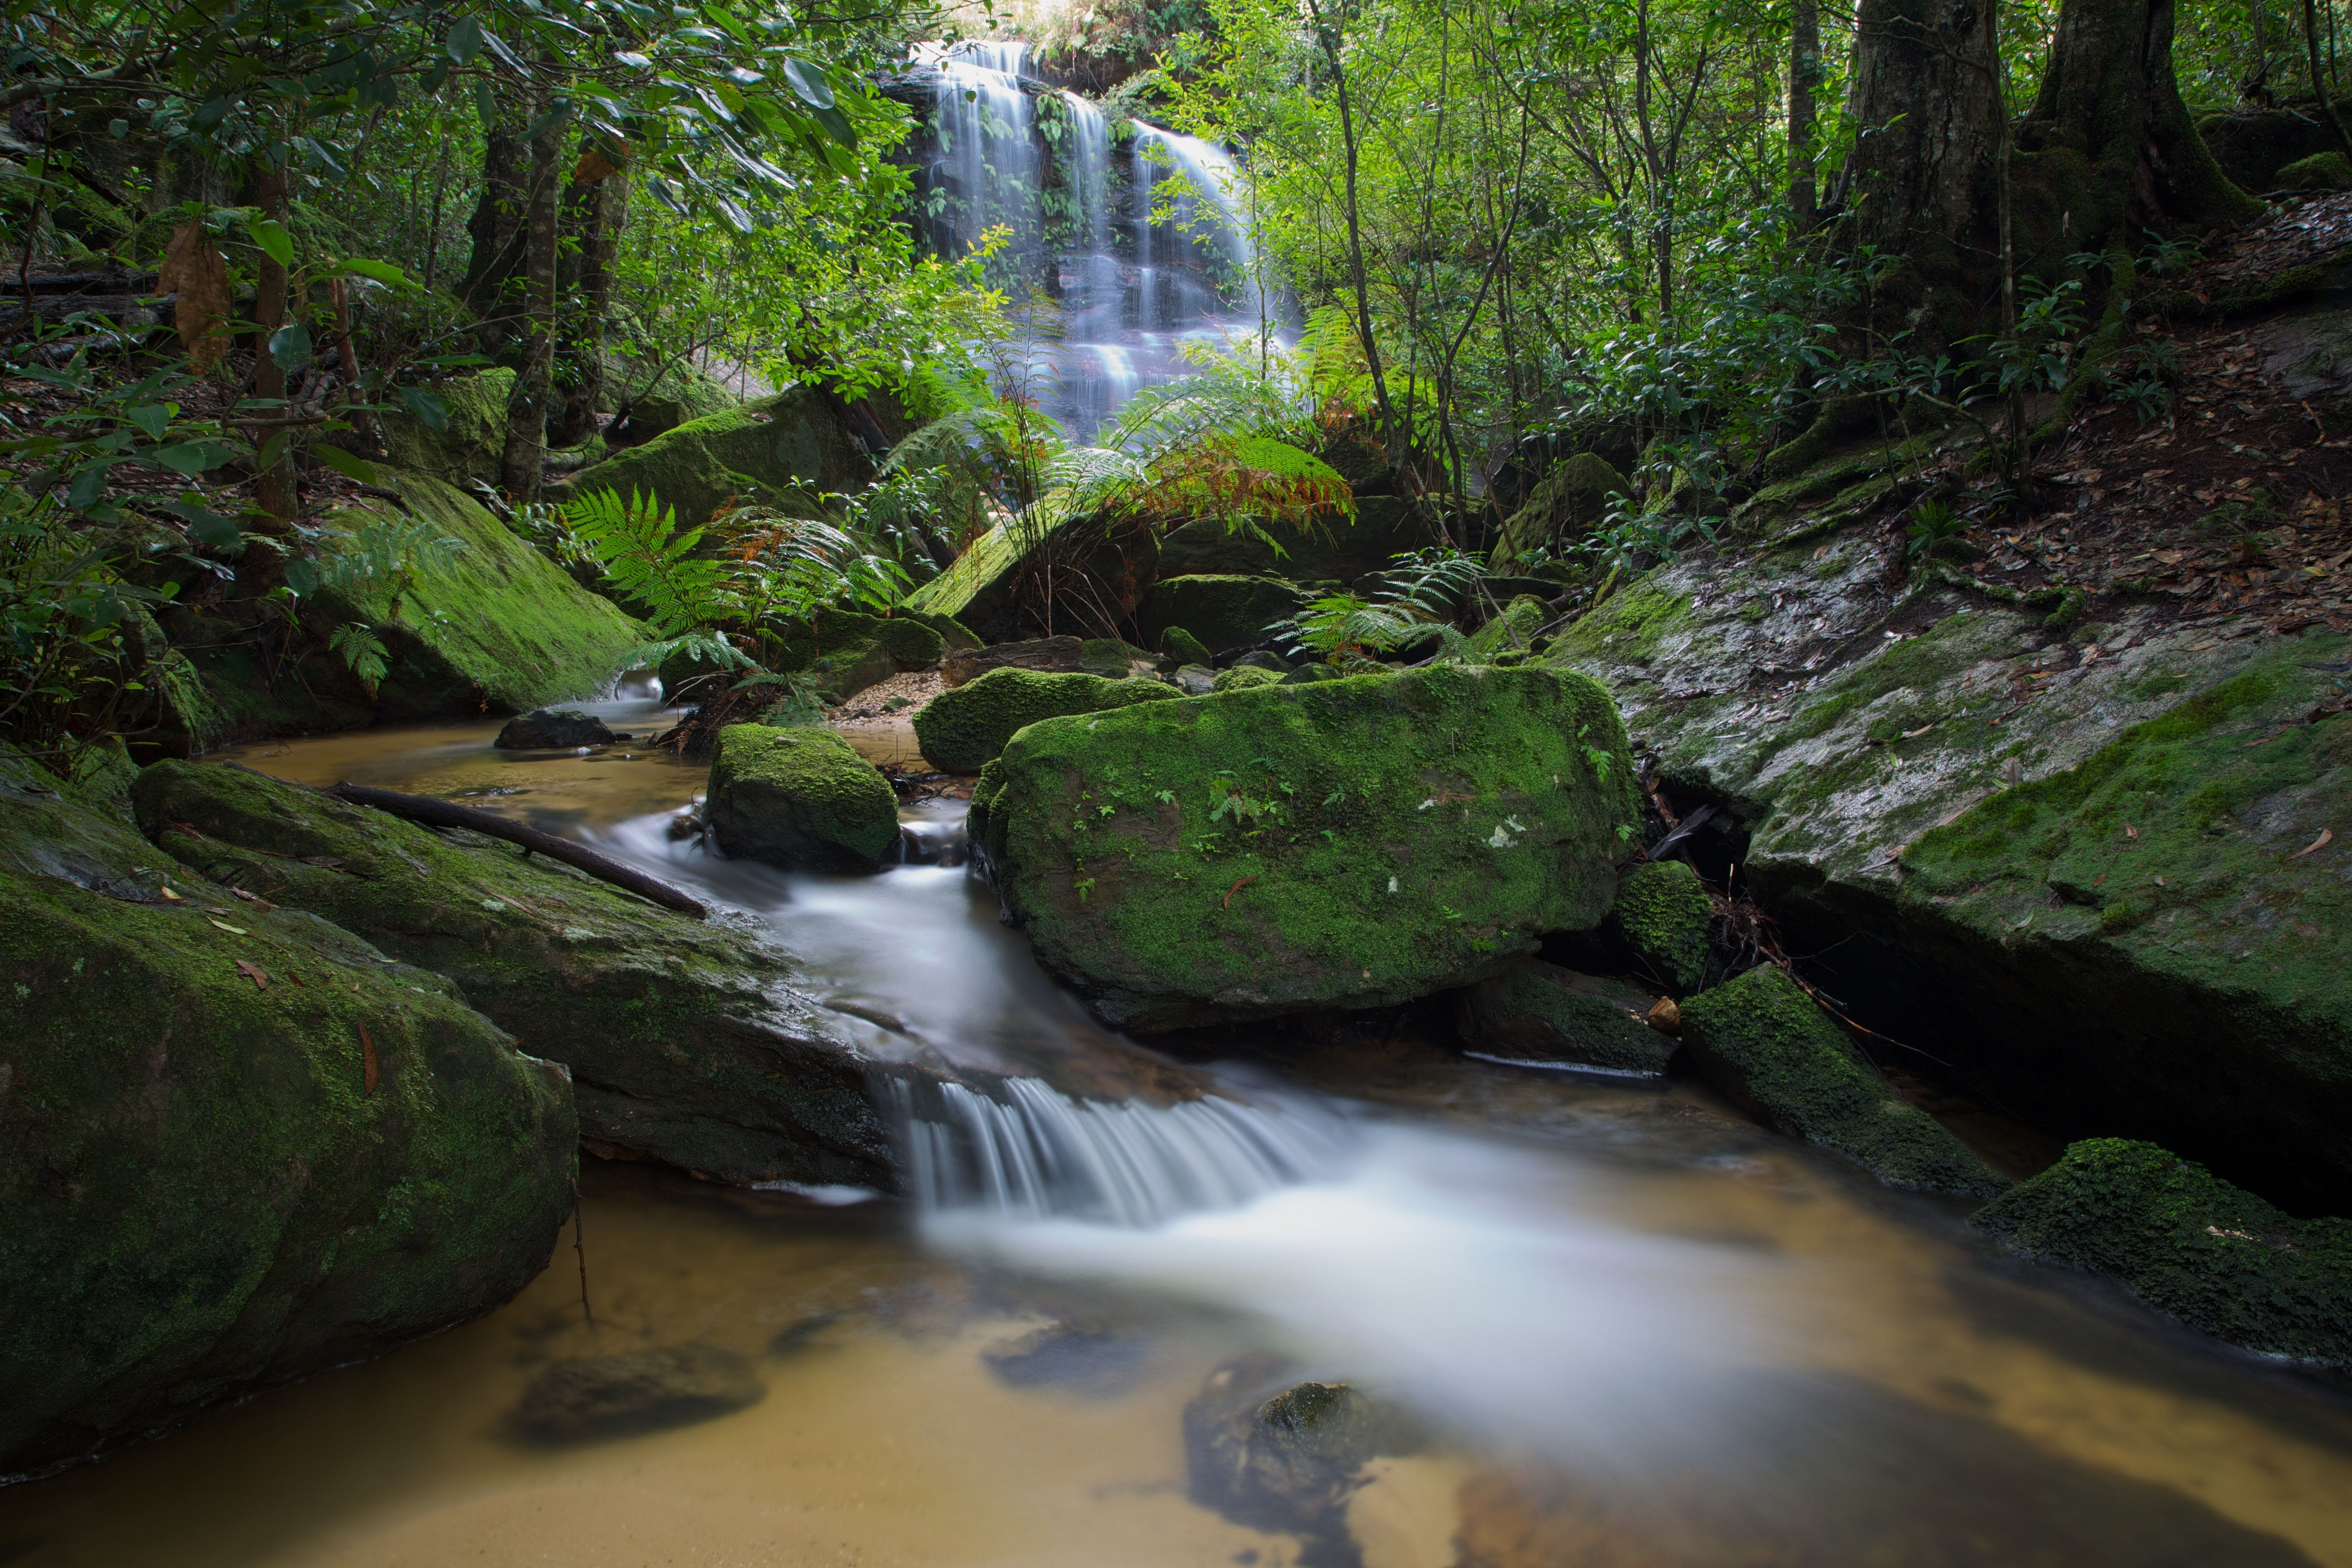 South Lawson Waterfall (Photo by David Noble)